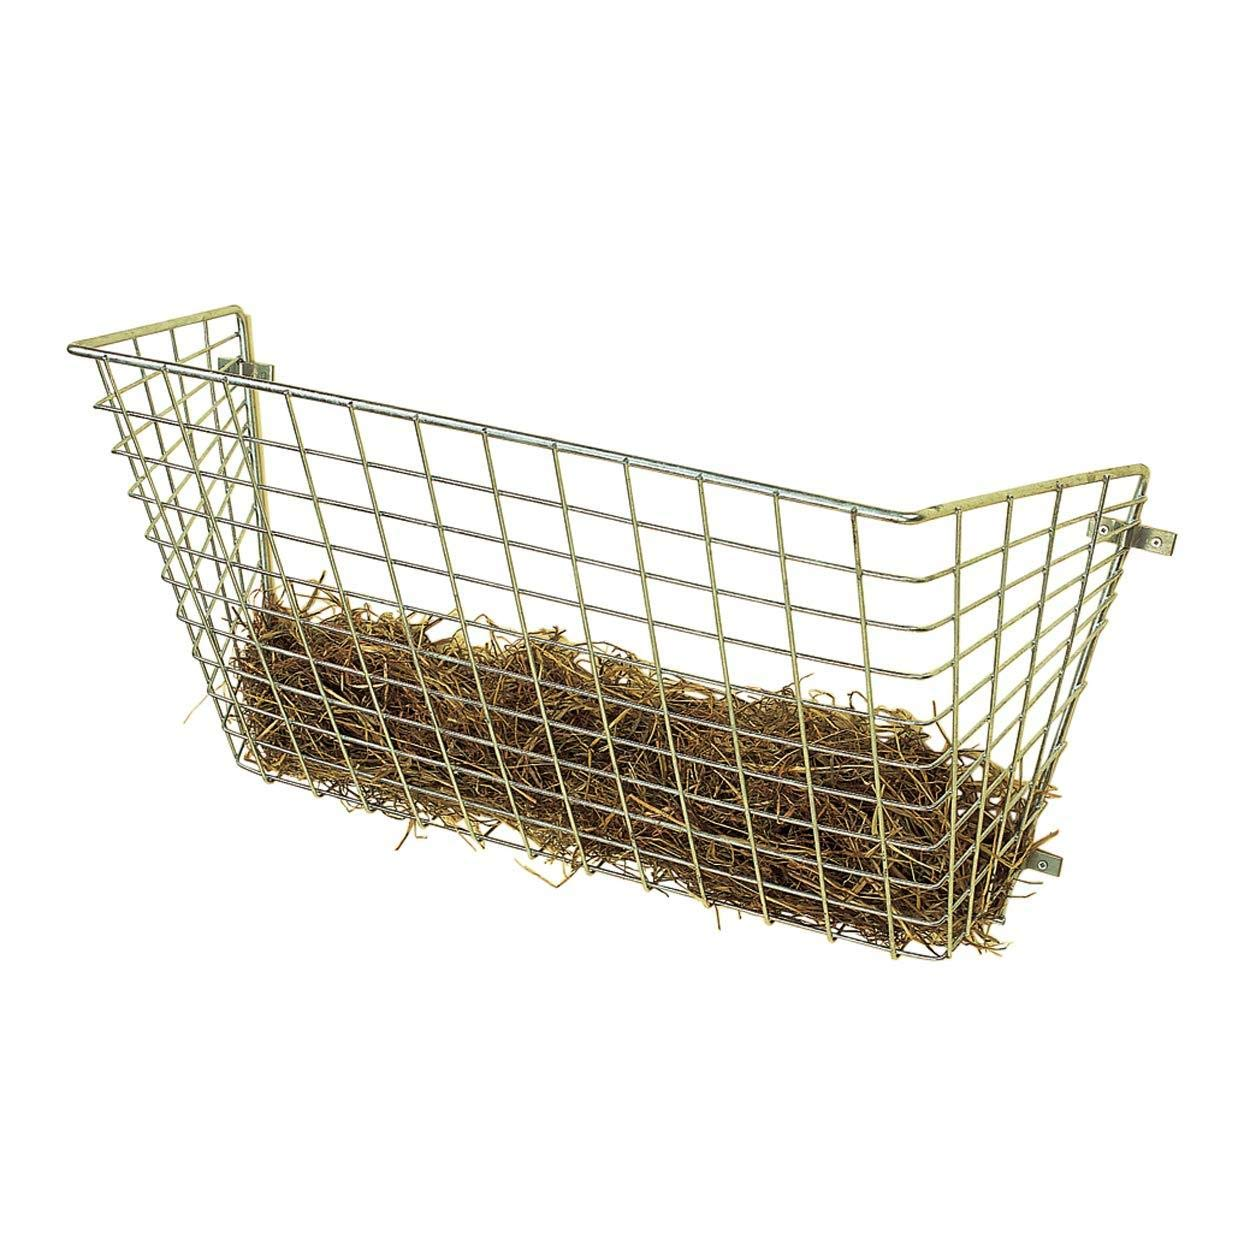 Stubbs Haylage Rack (One Size) (Silver) by Stubbs